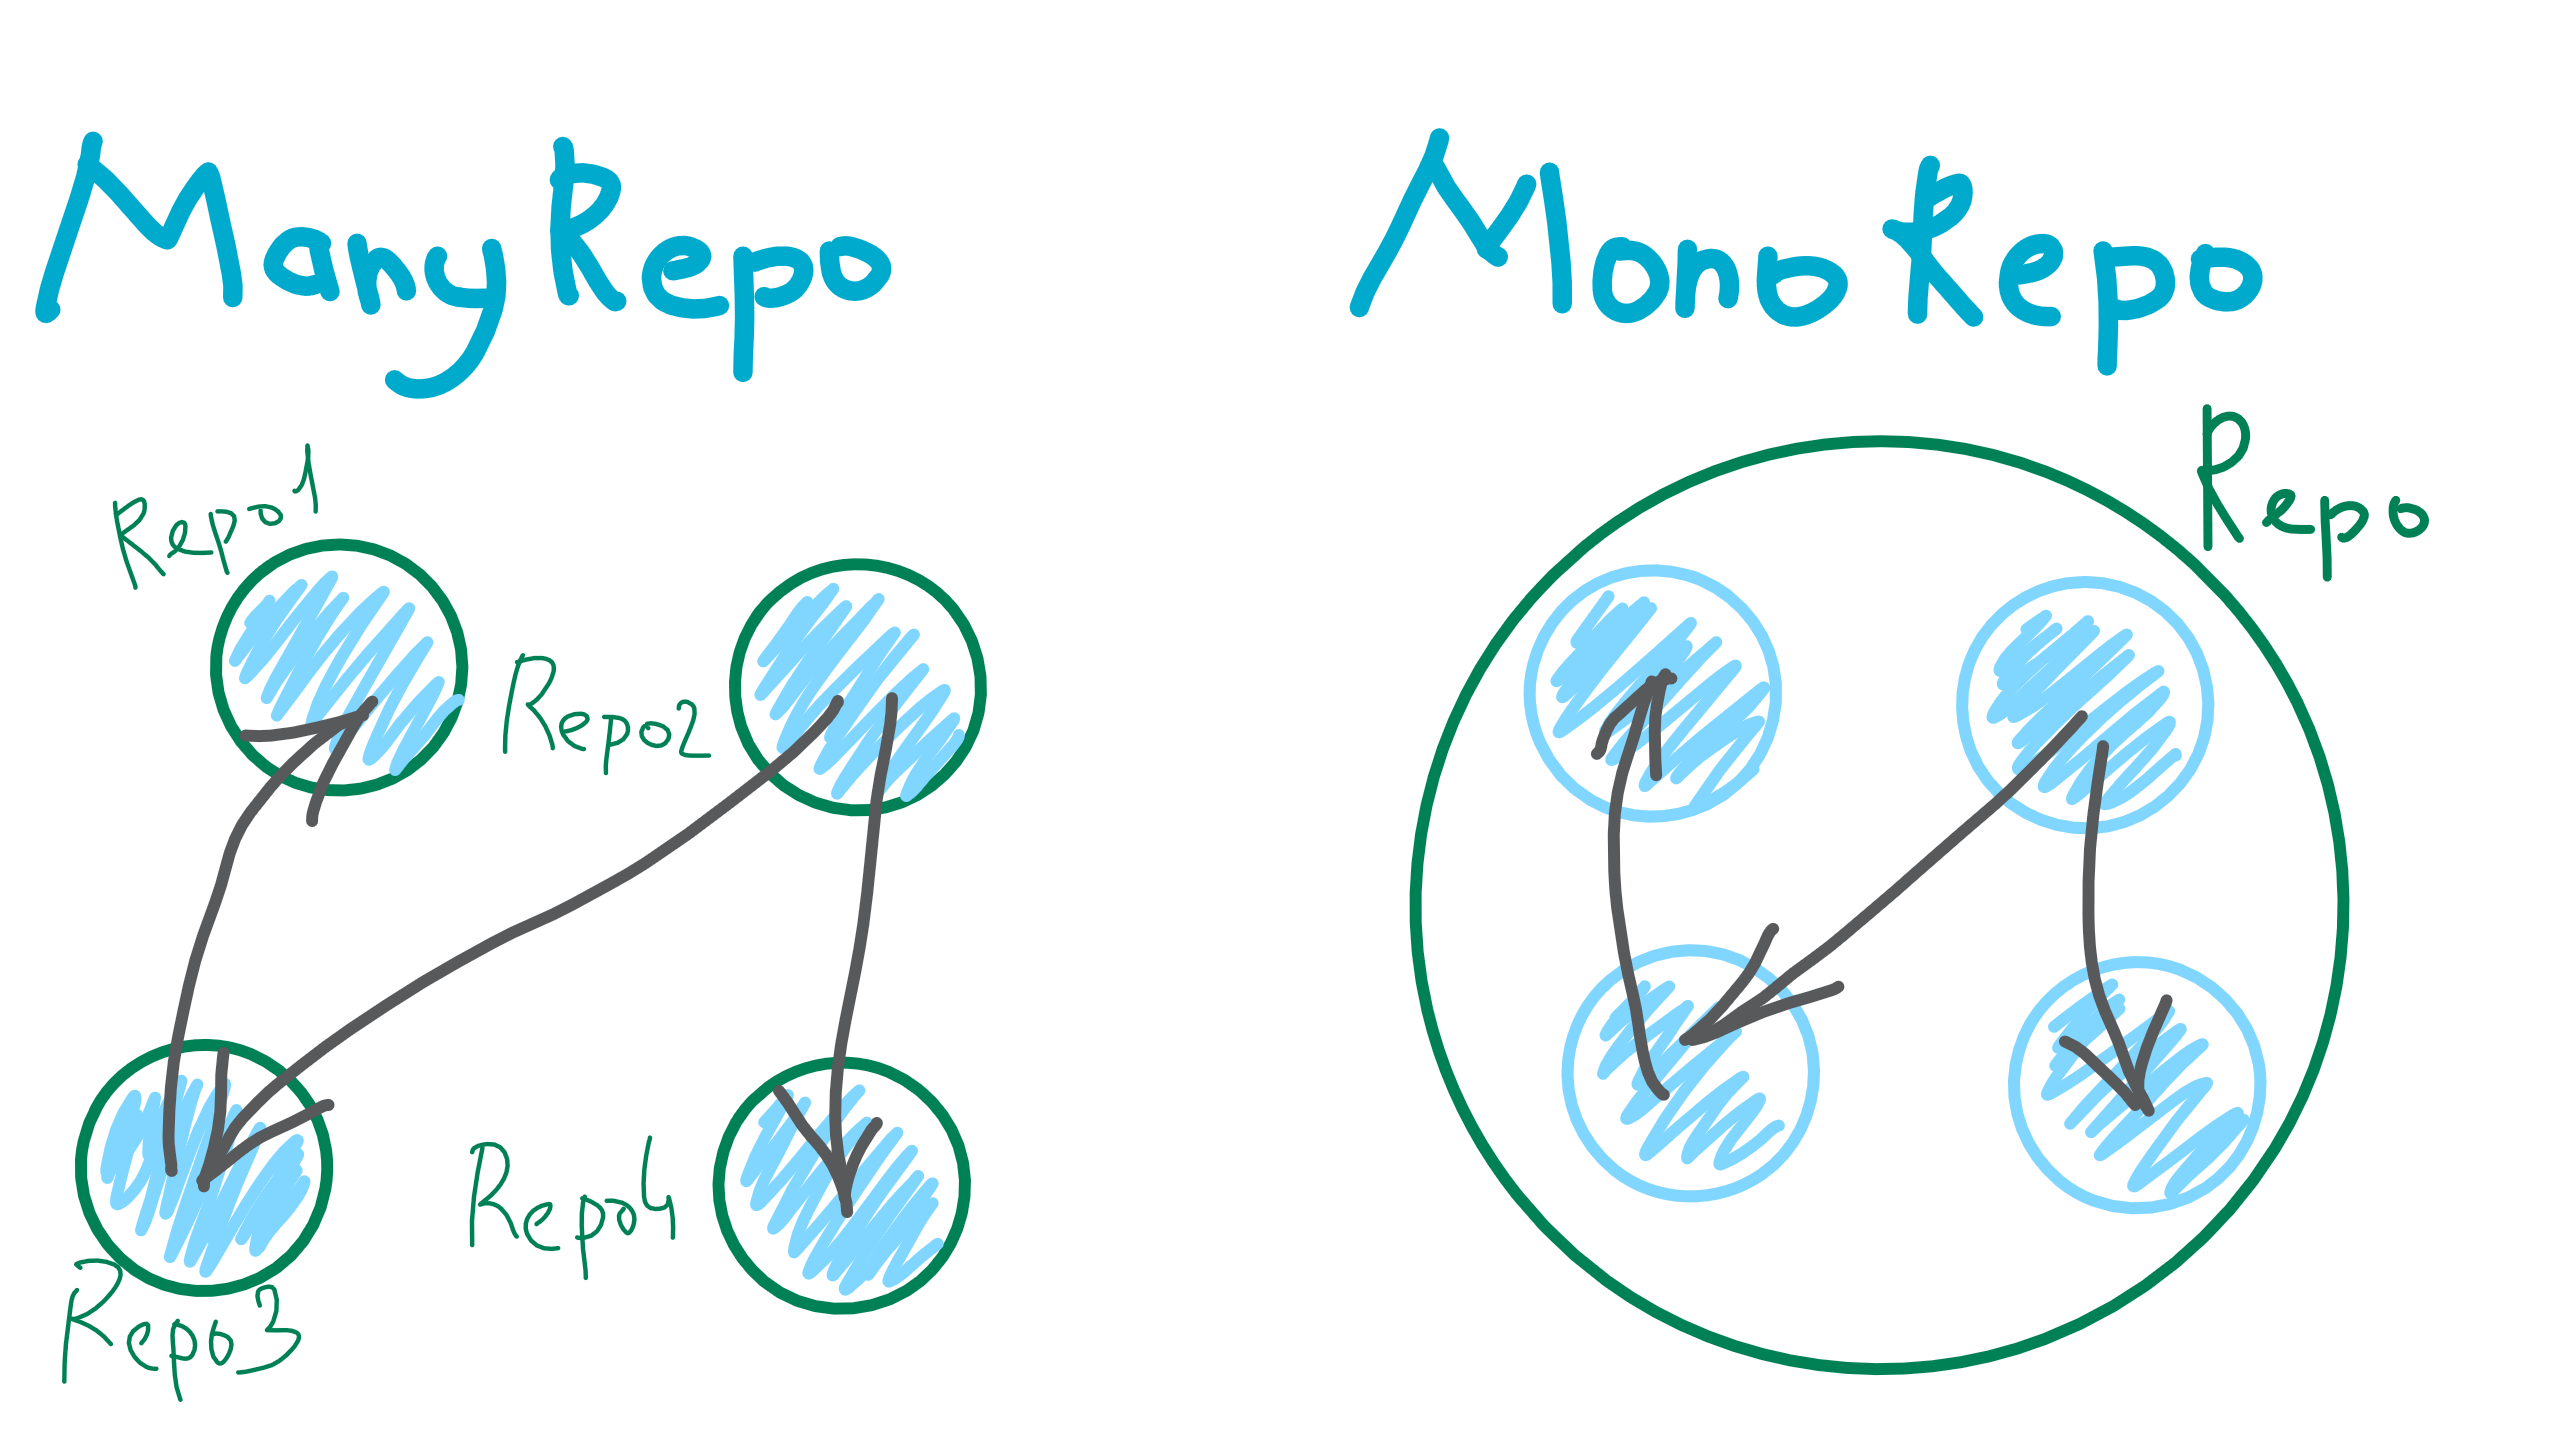 What is a Monorepo